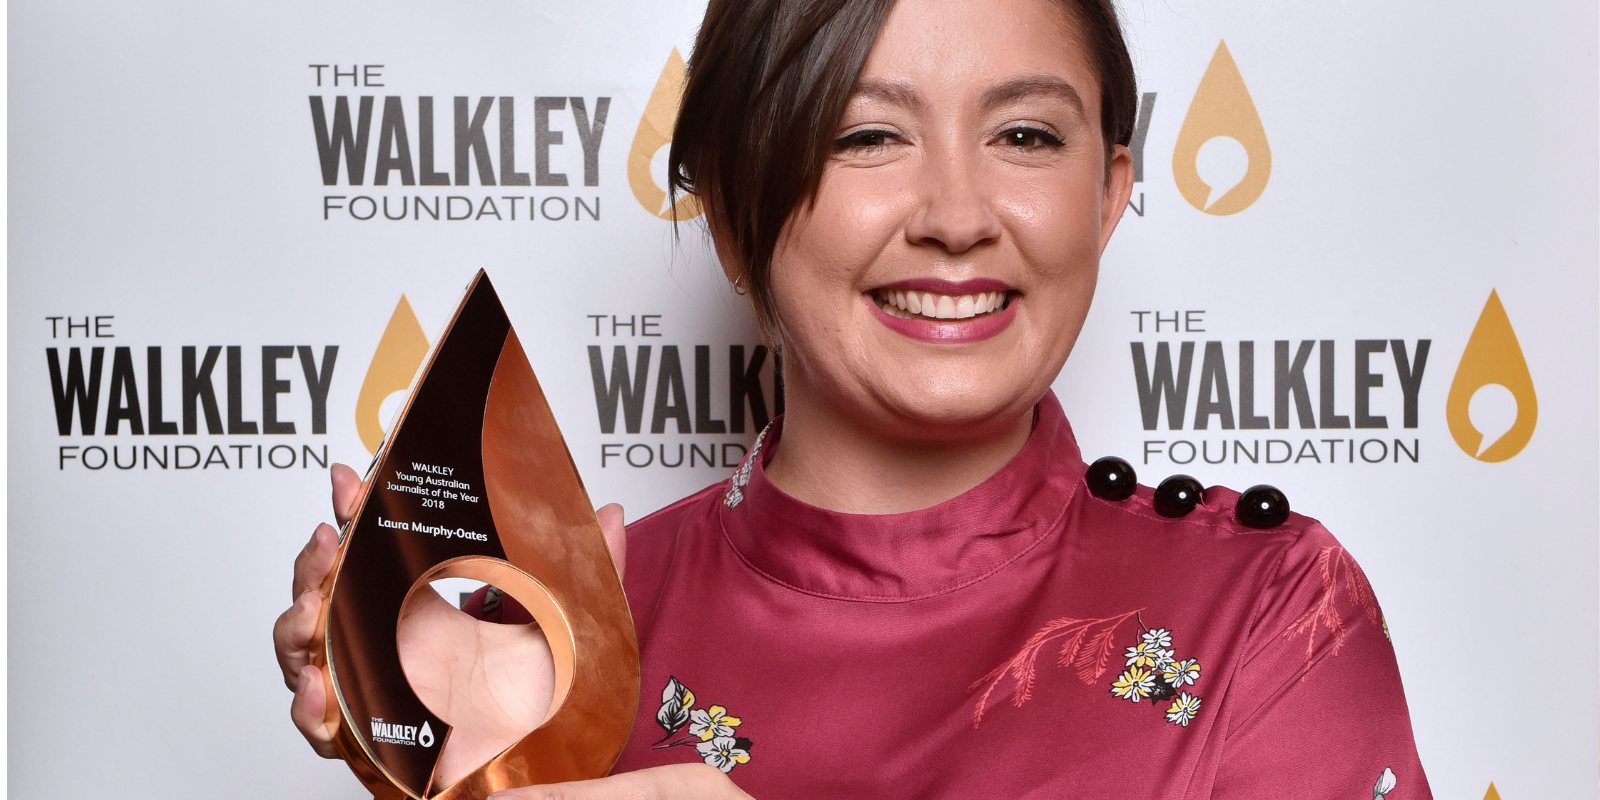 Winners announced for 2018 Walkley Mid-Year awards